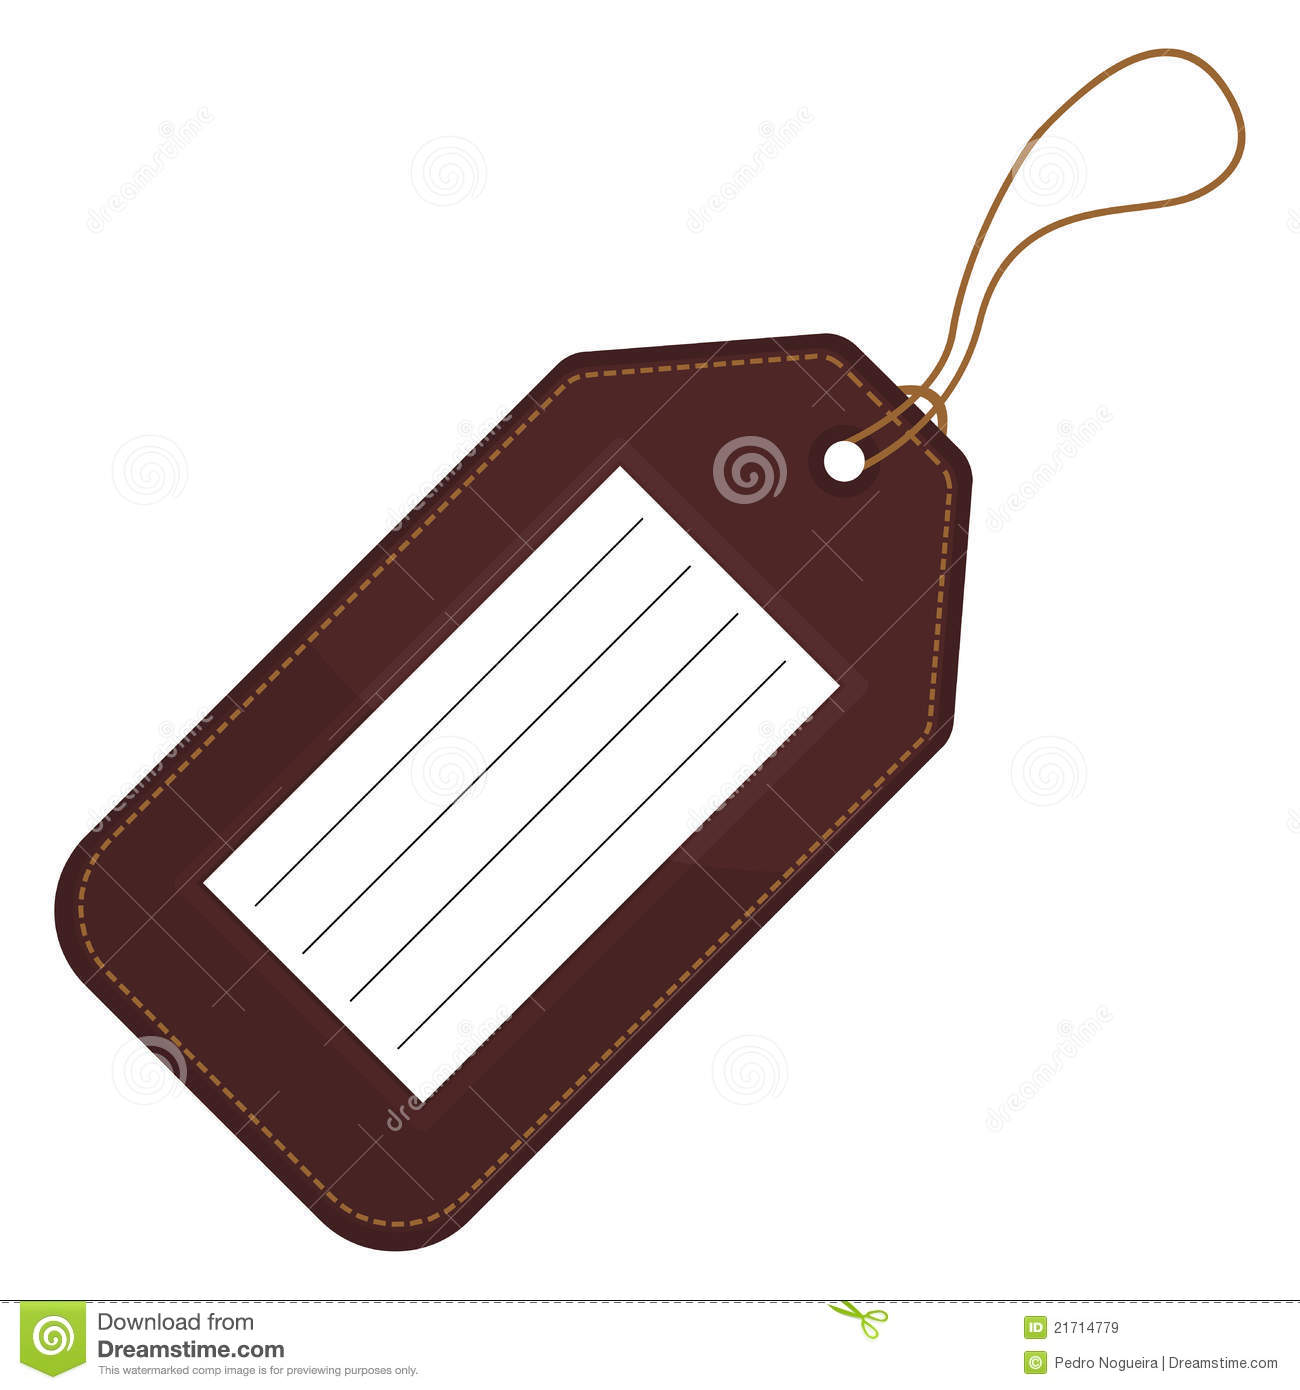 Luggage tag clipart 1 » Clipart Station.